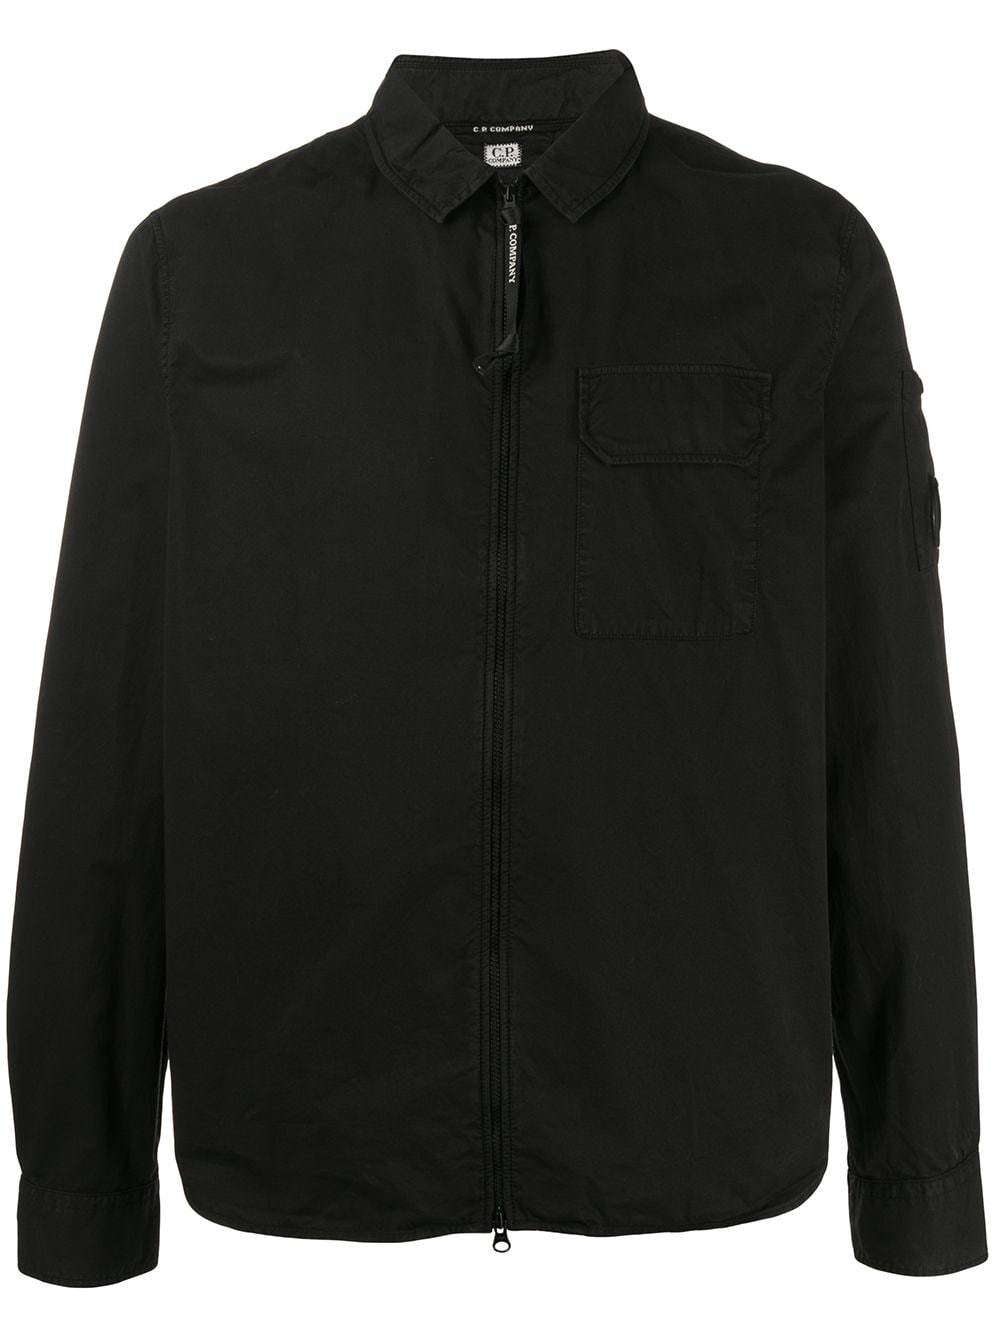 C.P. COMPANY lens detail zip-up shirt jacket